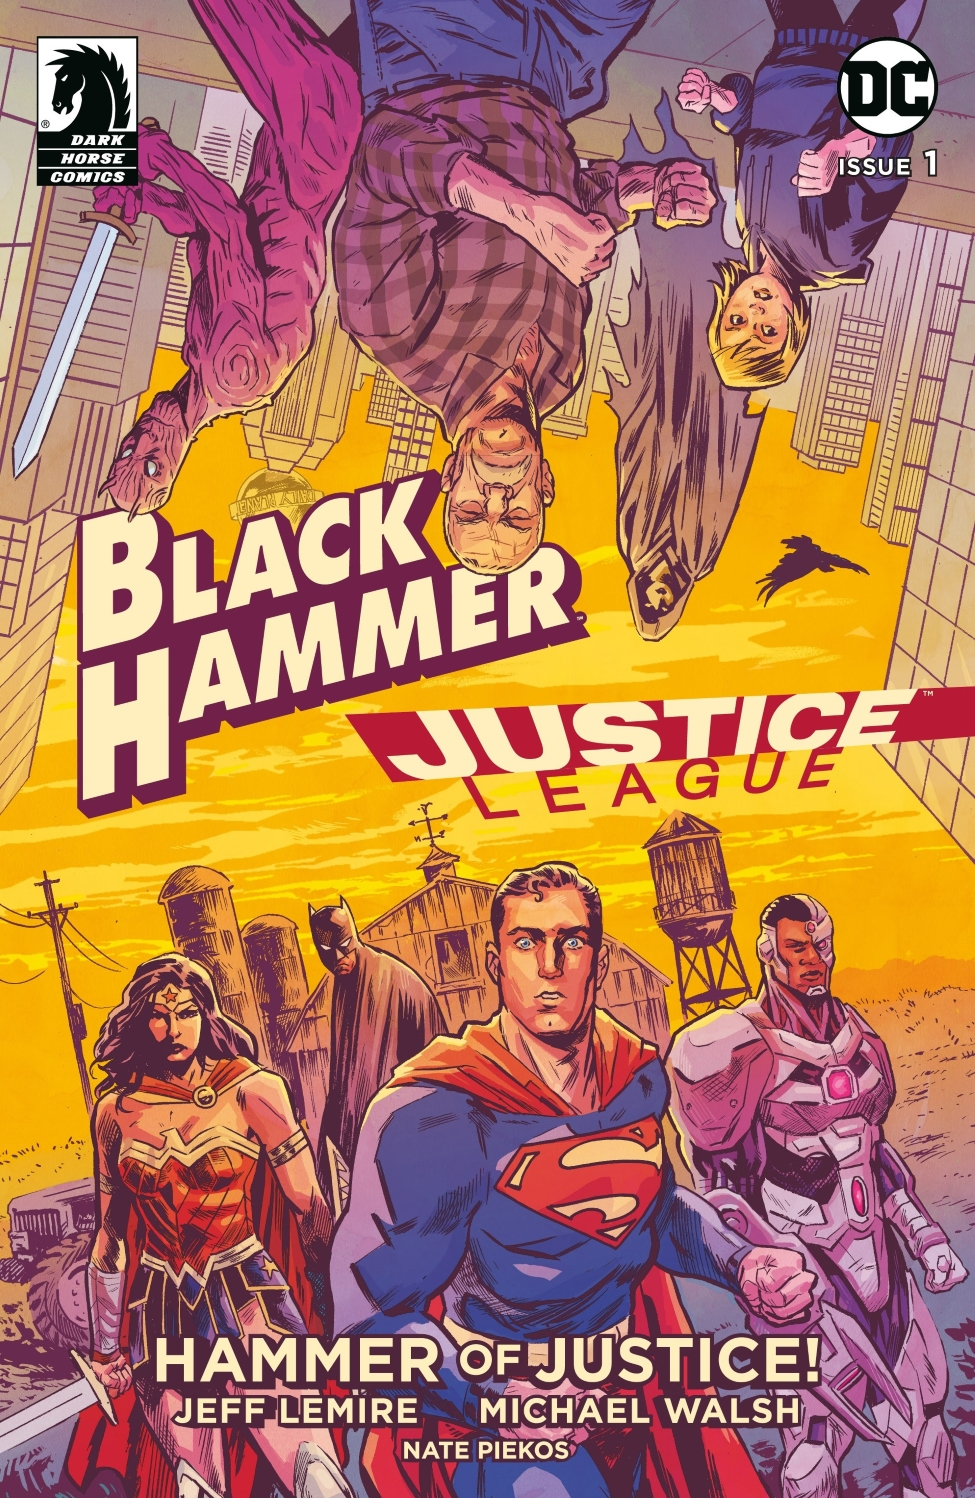 Black Hammer/Justice League: Hammer of Justice! Vol 1 1